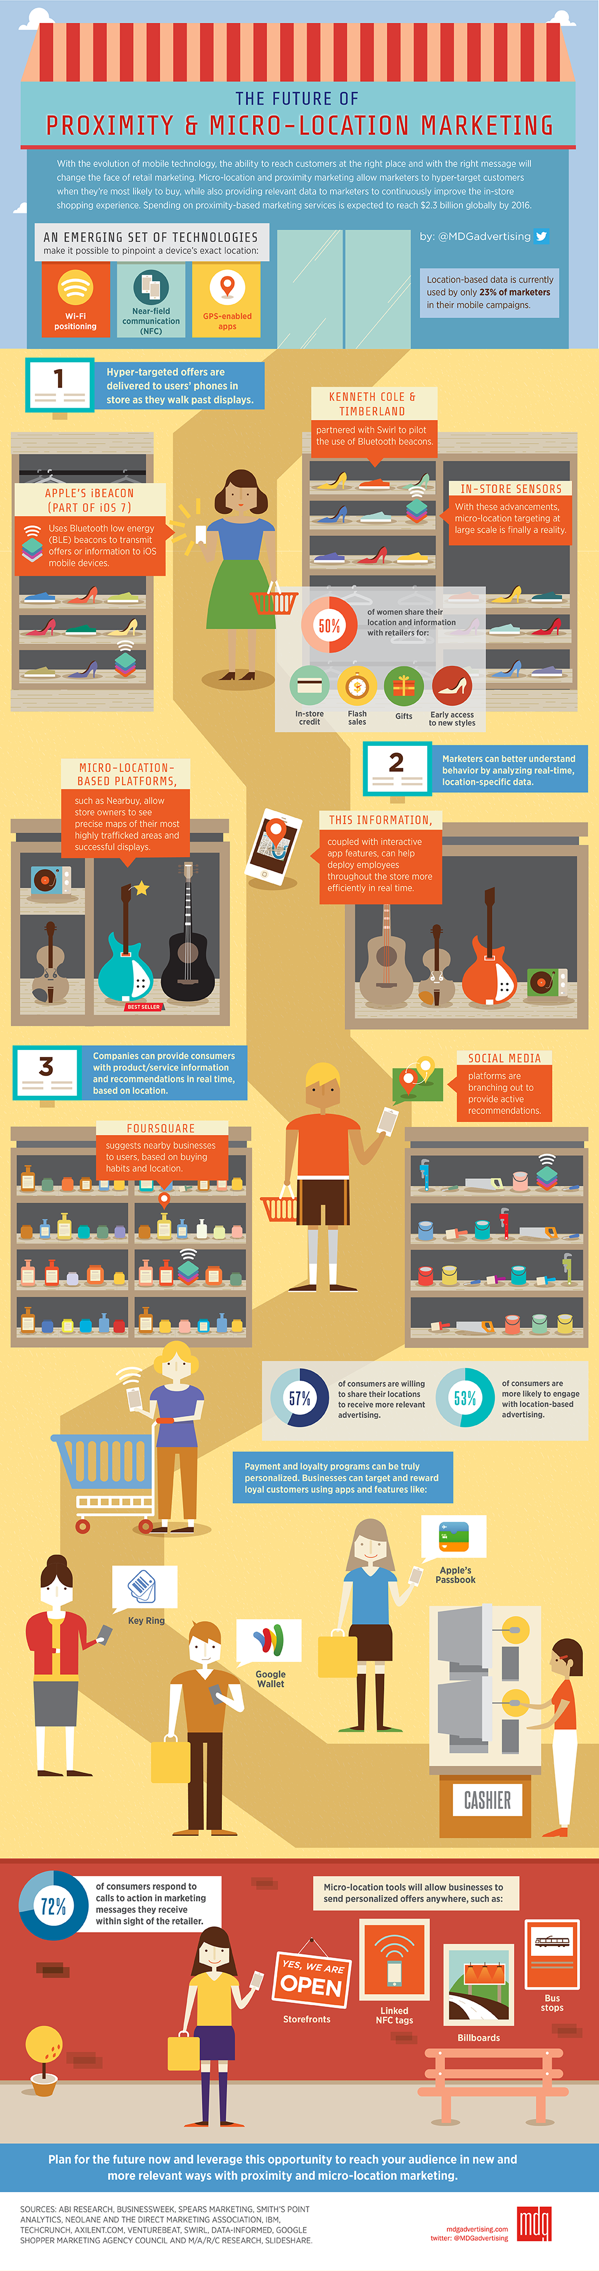 infographic-future-of-proximity-and-micro-location-marketing